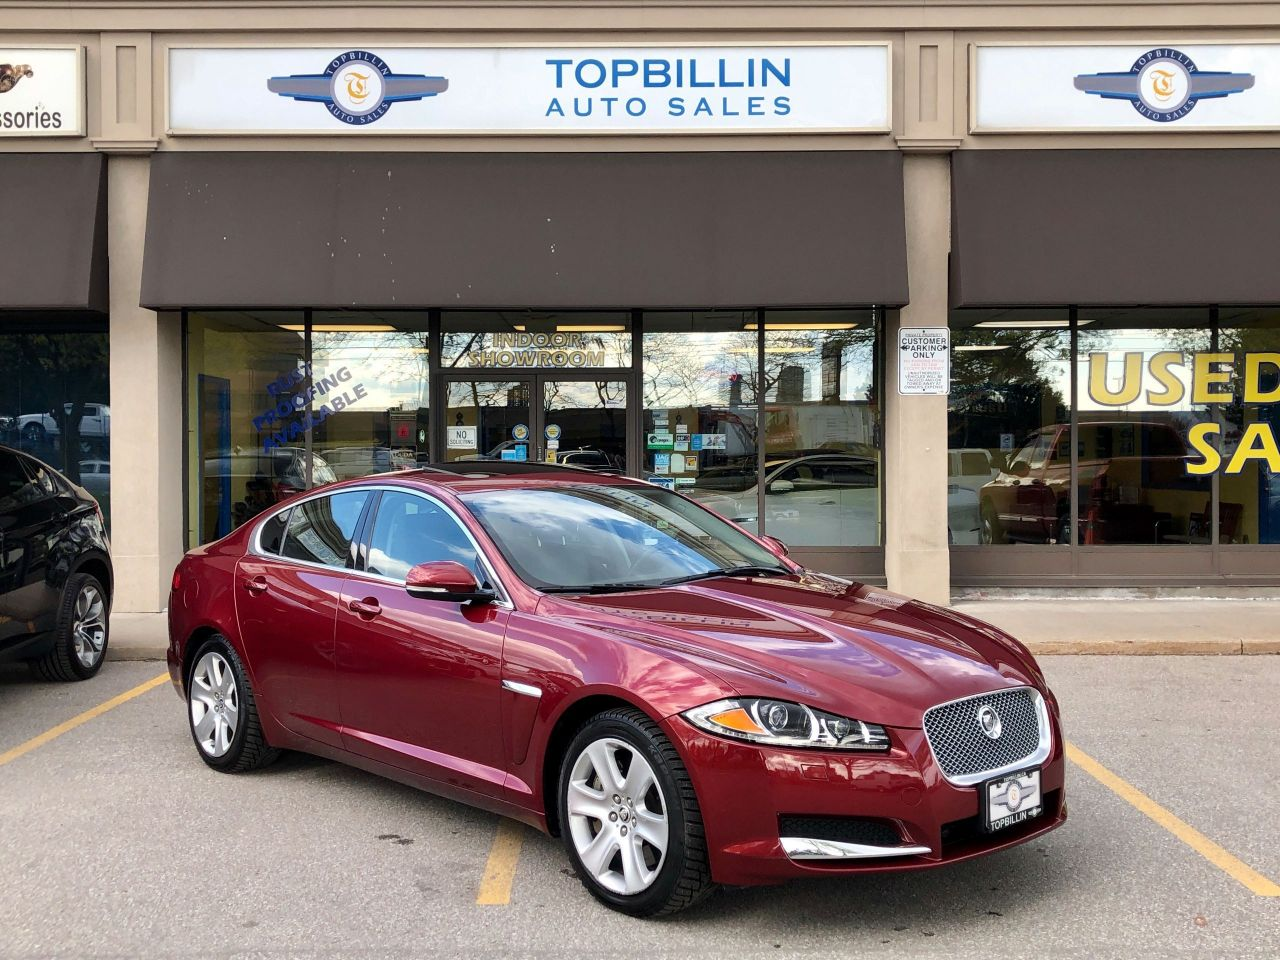 2013 Jaguar XF V6 AWD, Only 47K kms